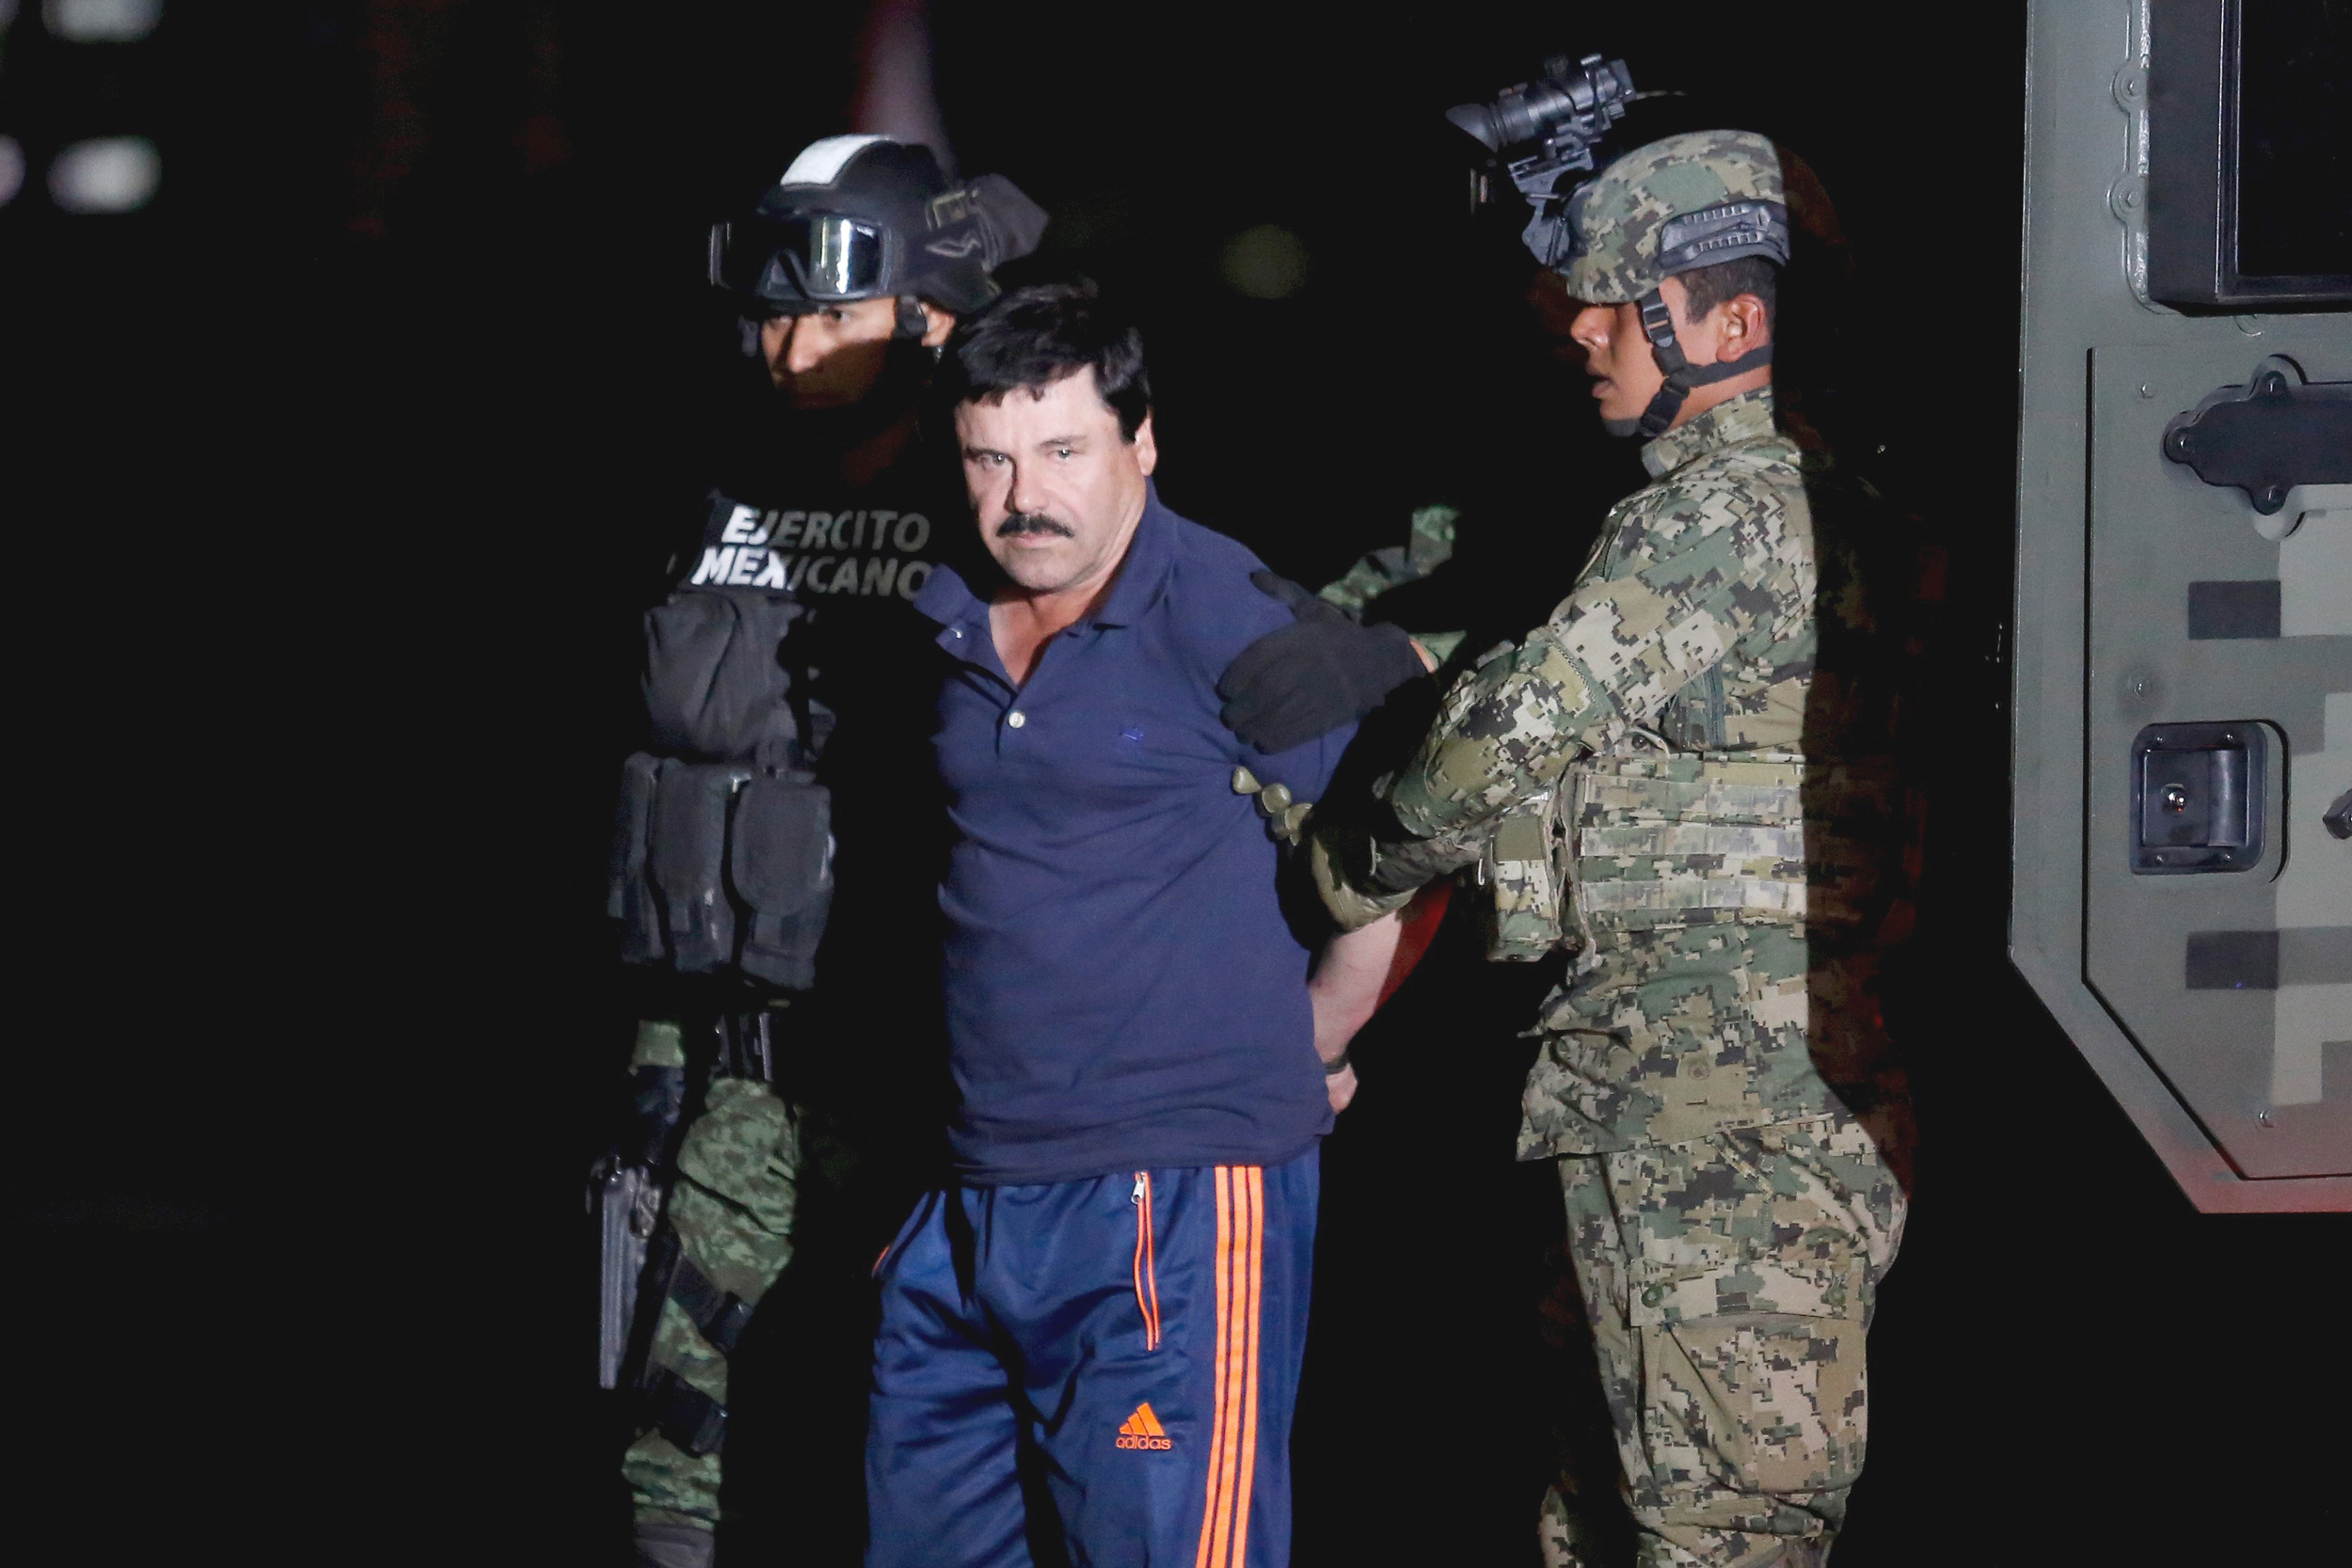 160108-el-chapo-captured-again-yh-1142p_690ac1bd5fb123c6574ed115e723c457.jpg